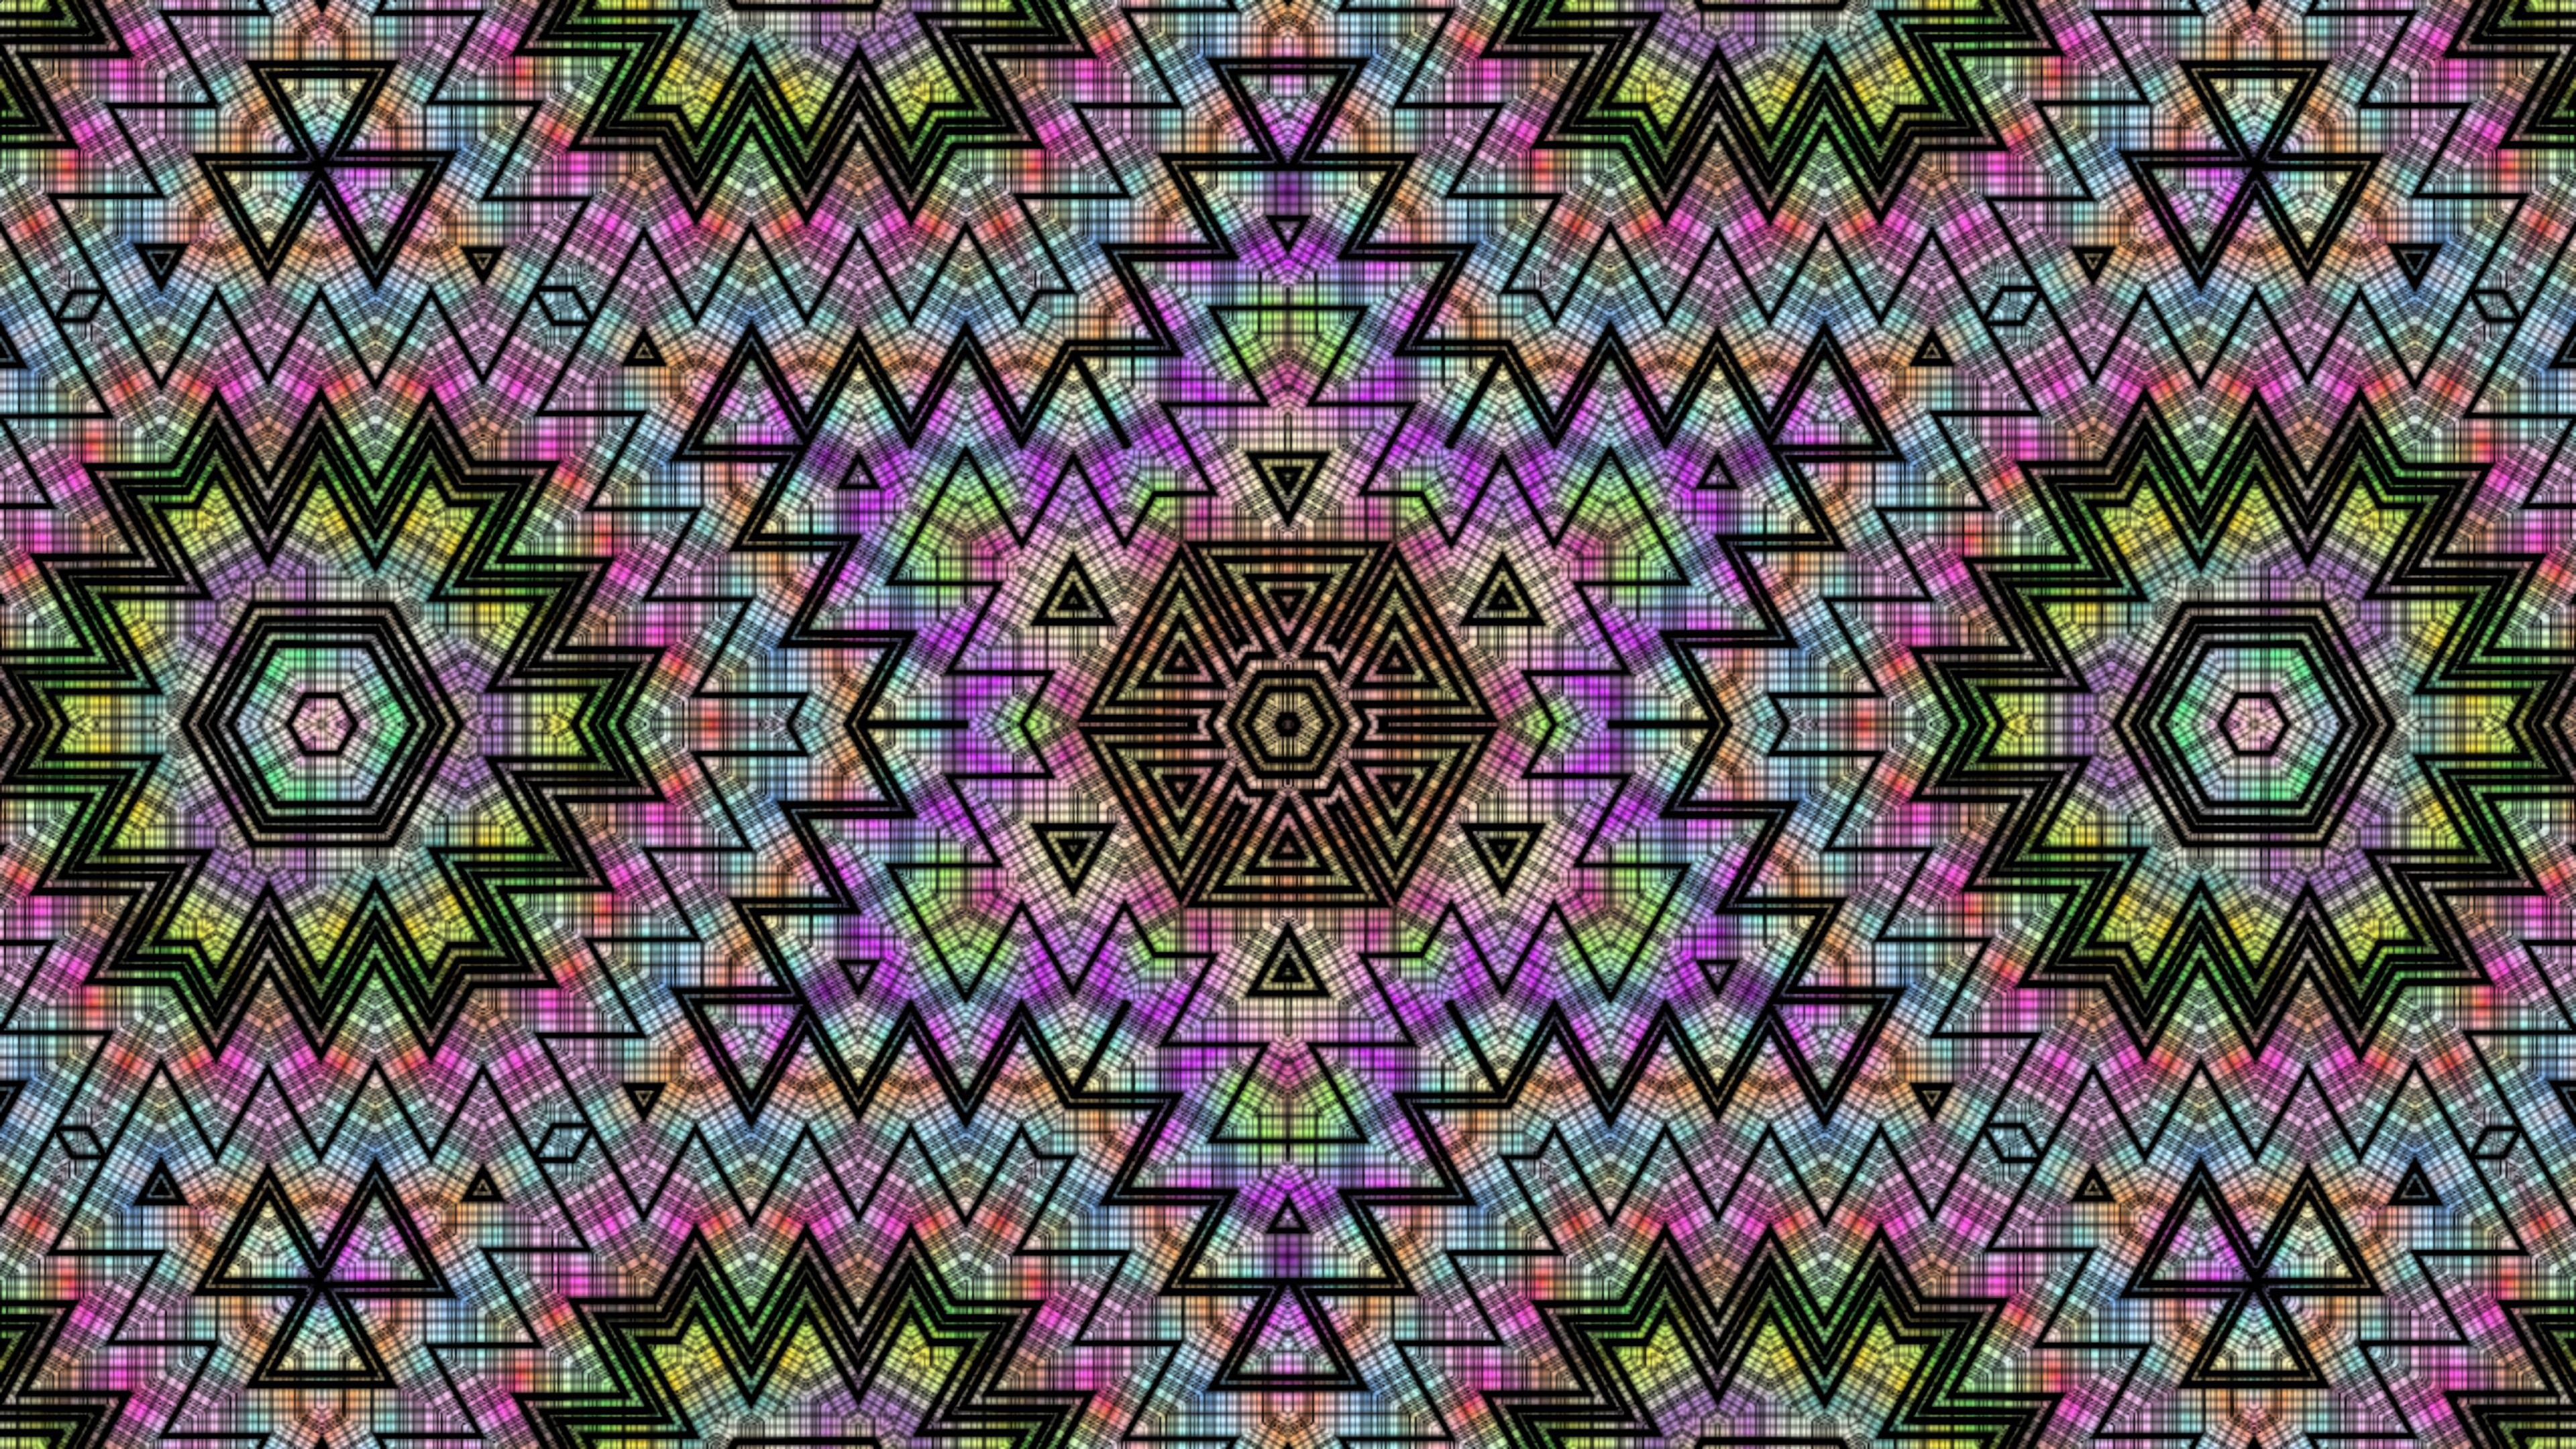 79610 download wallpaper Abstract, Kaleidoscope, Zigzags, Patterns screensavers and pictures for free